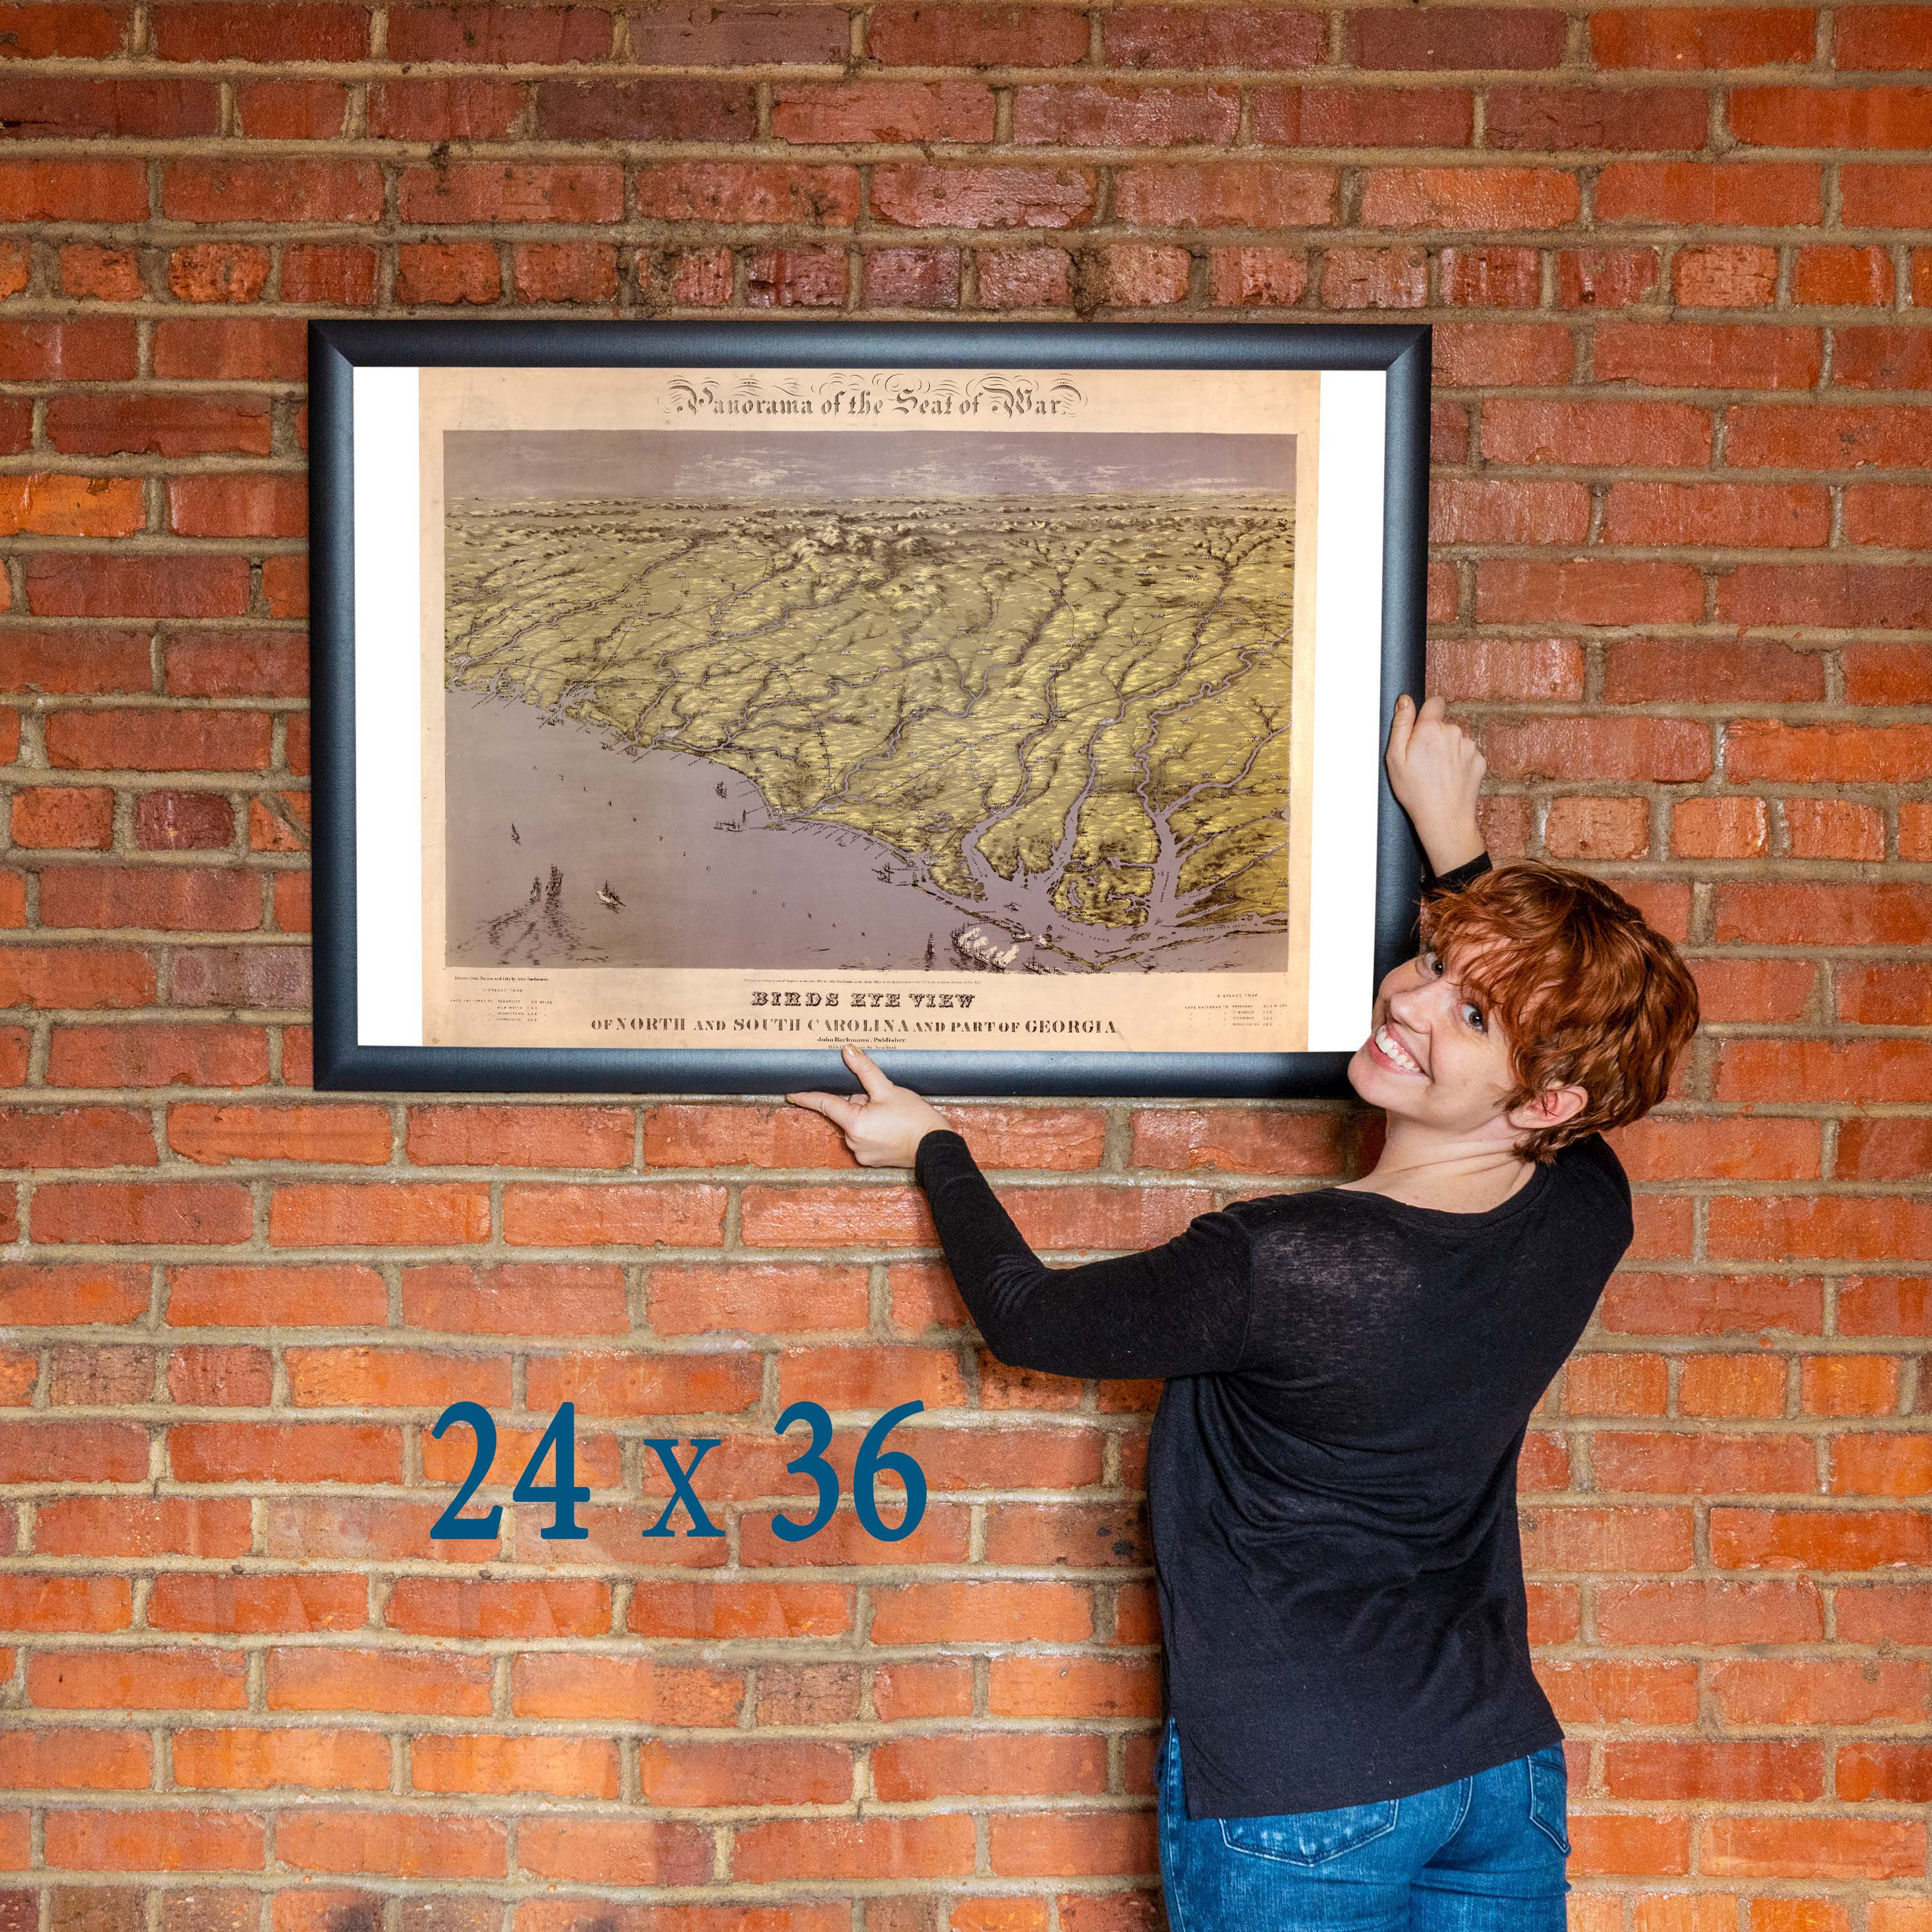 24x36 Vintage Reproduction Civil War Map North And South In 1861